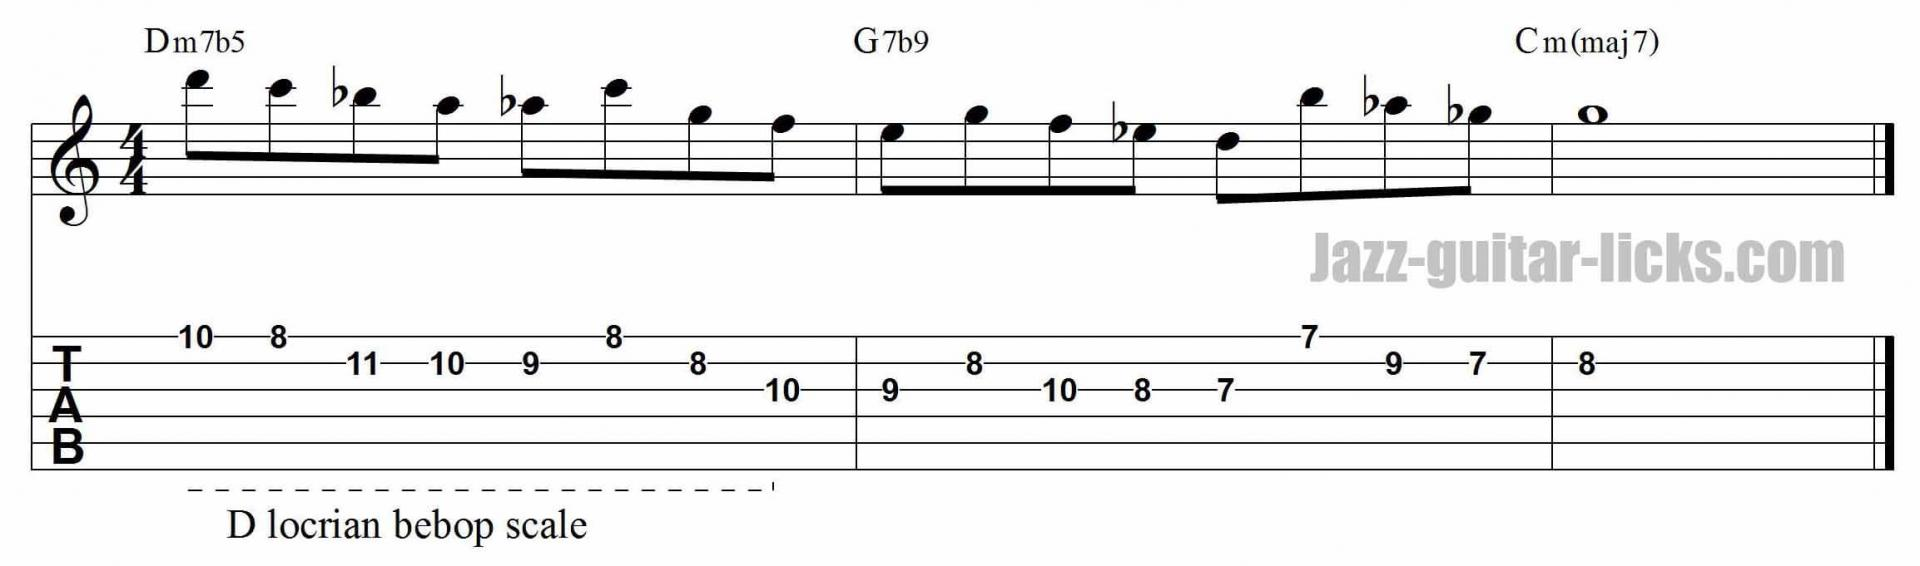 Playback guitar lick